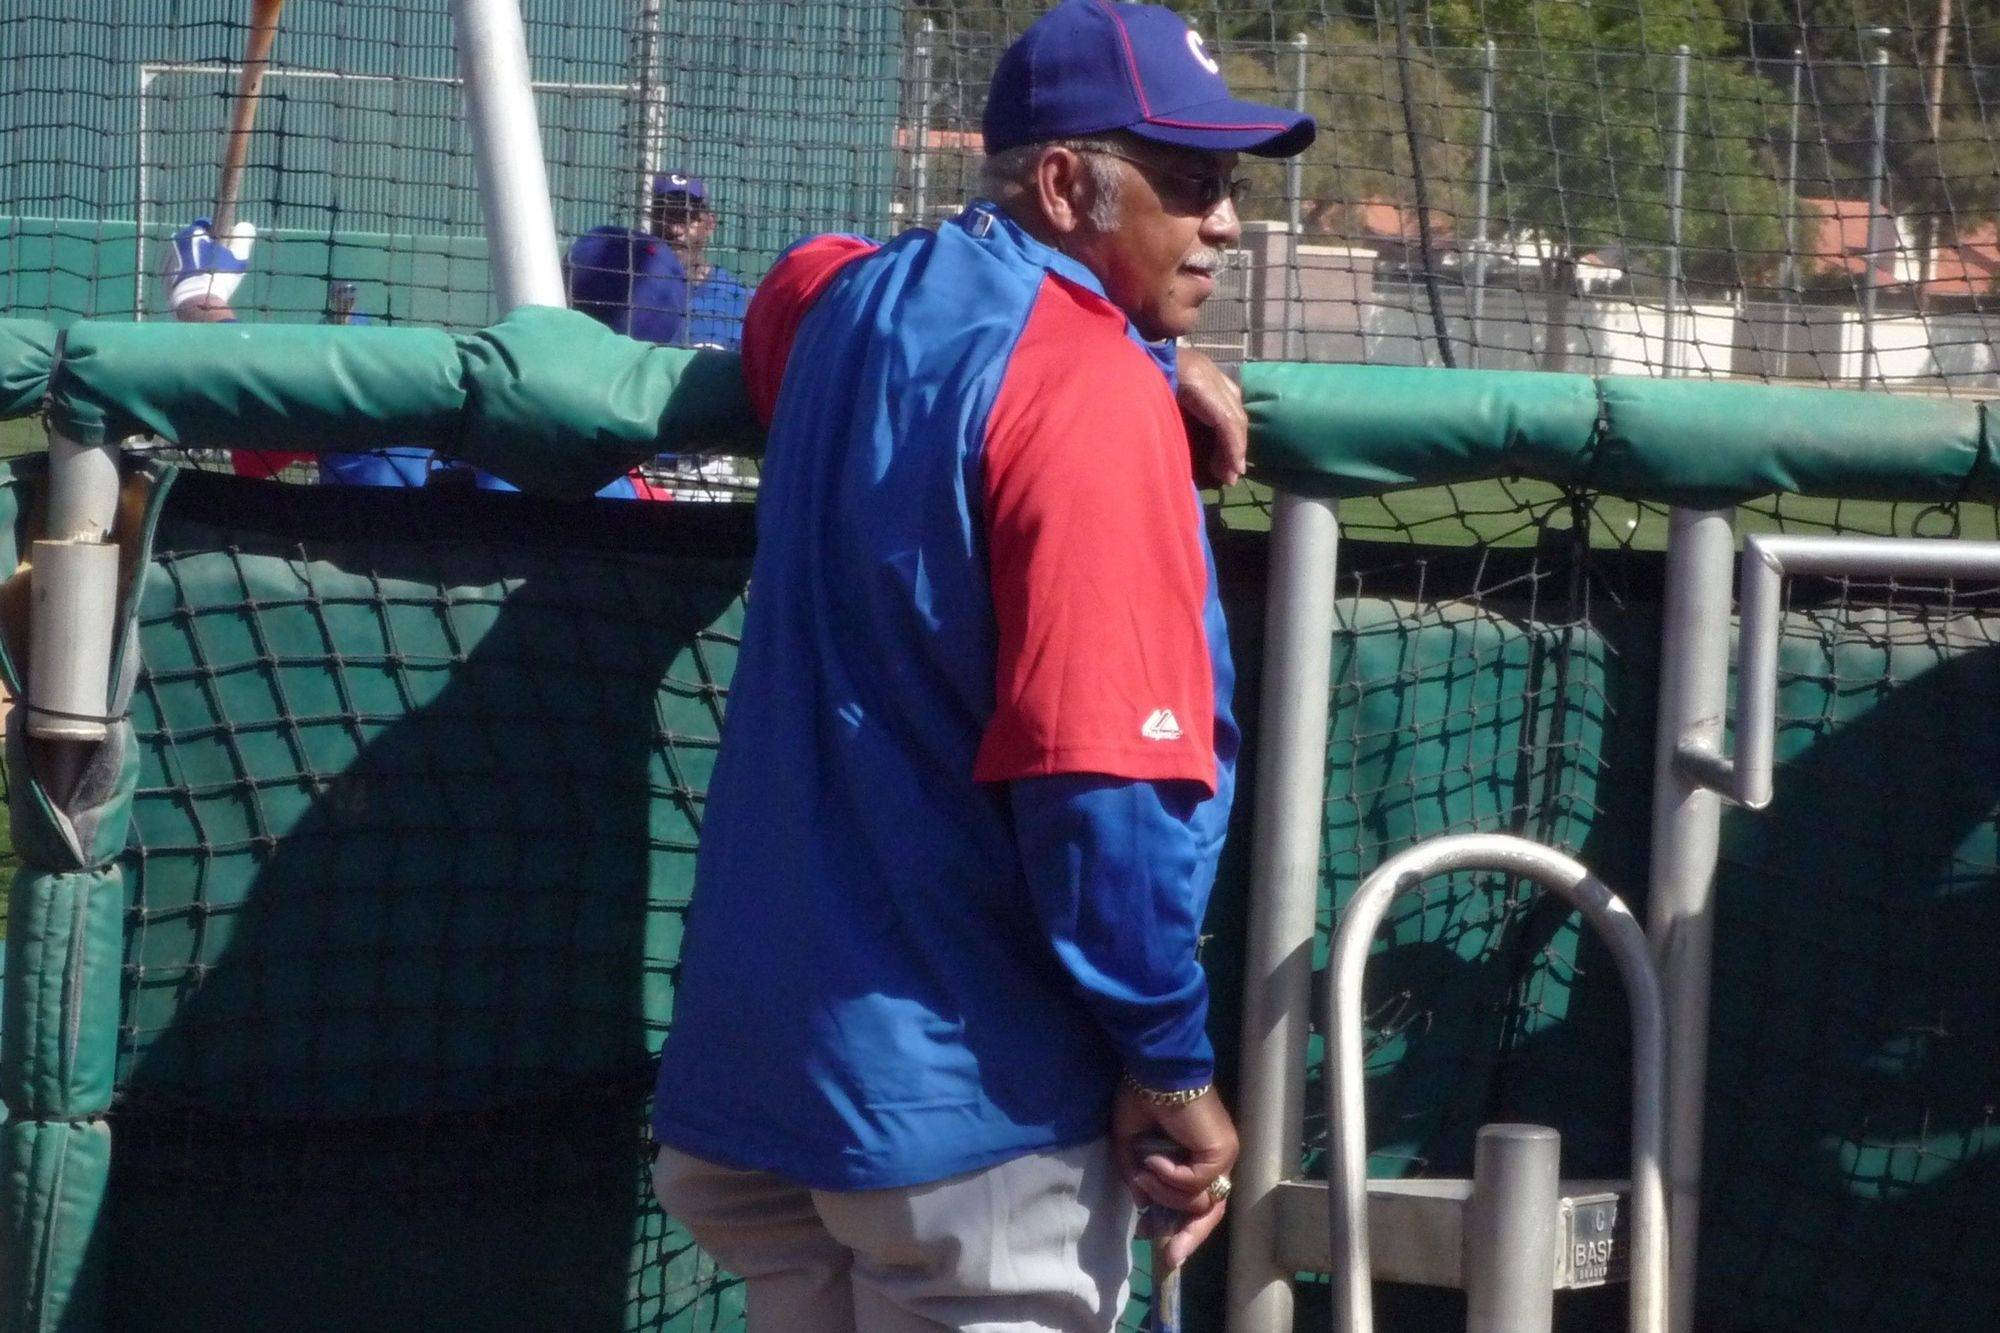 Baseball season has officially returned with the arrival of Hall of Famer Billy Williams at Cubs camp this week.